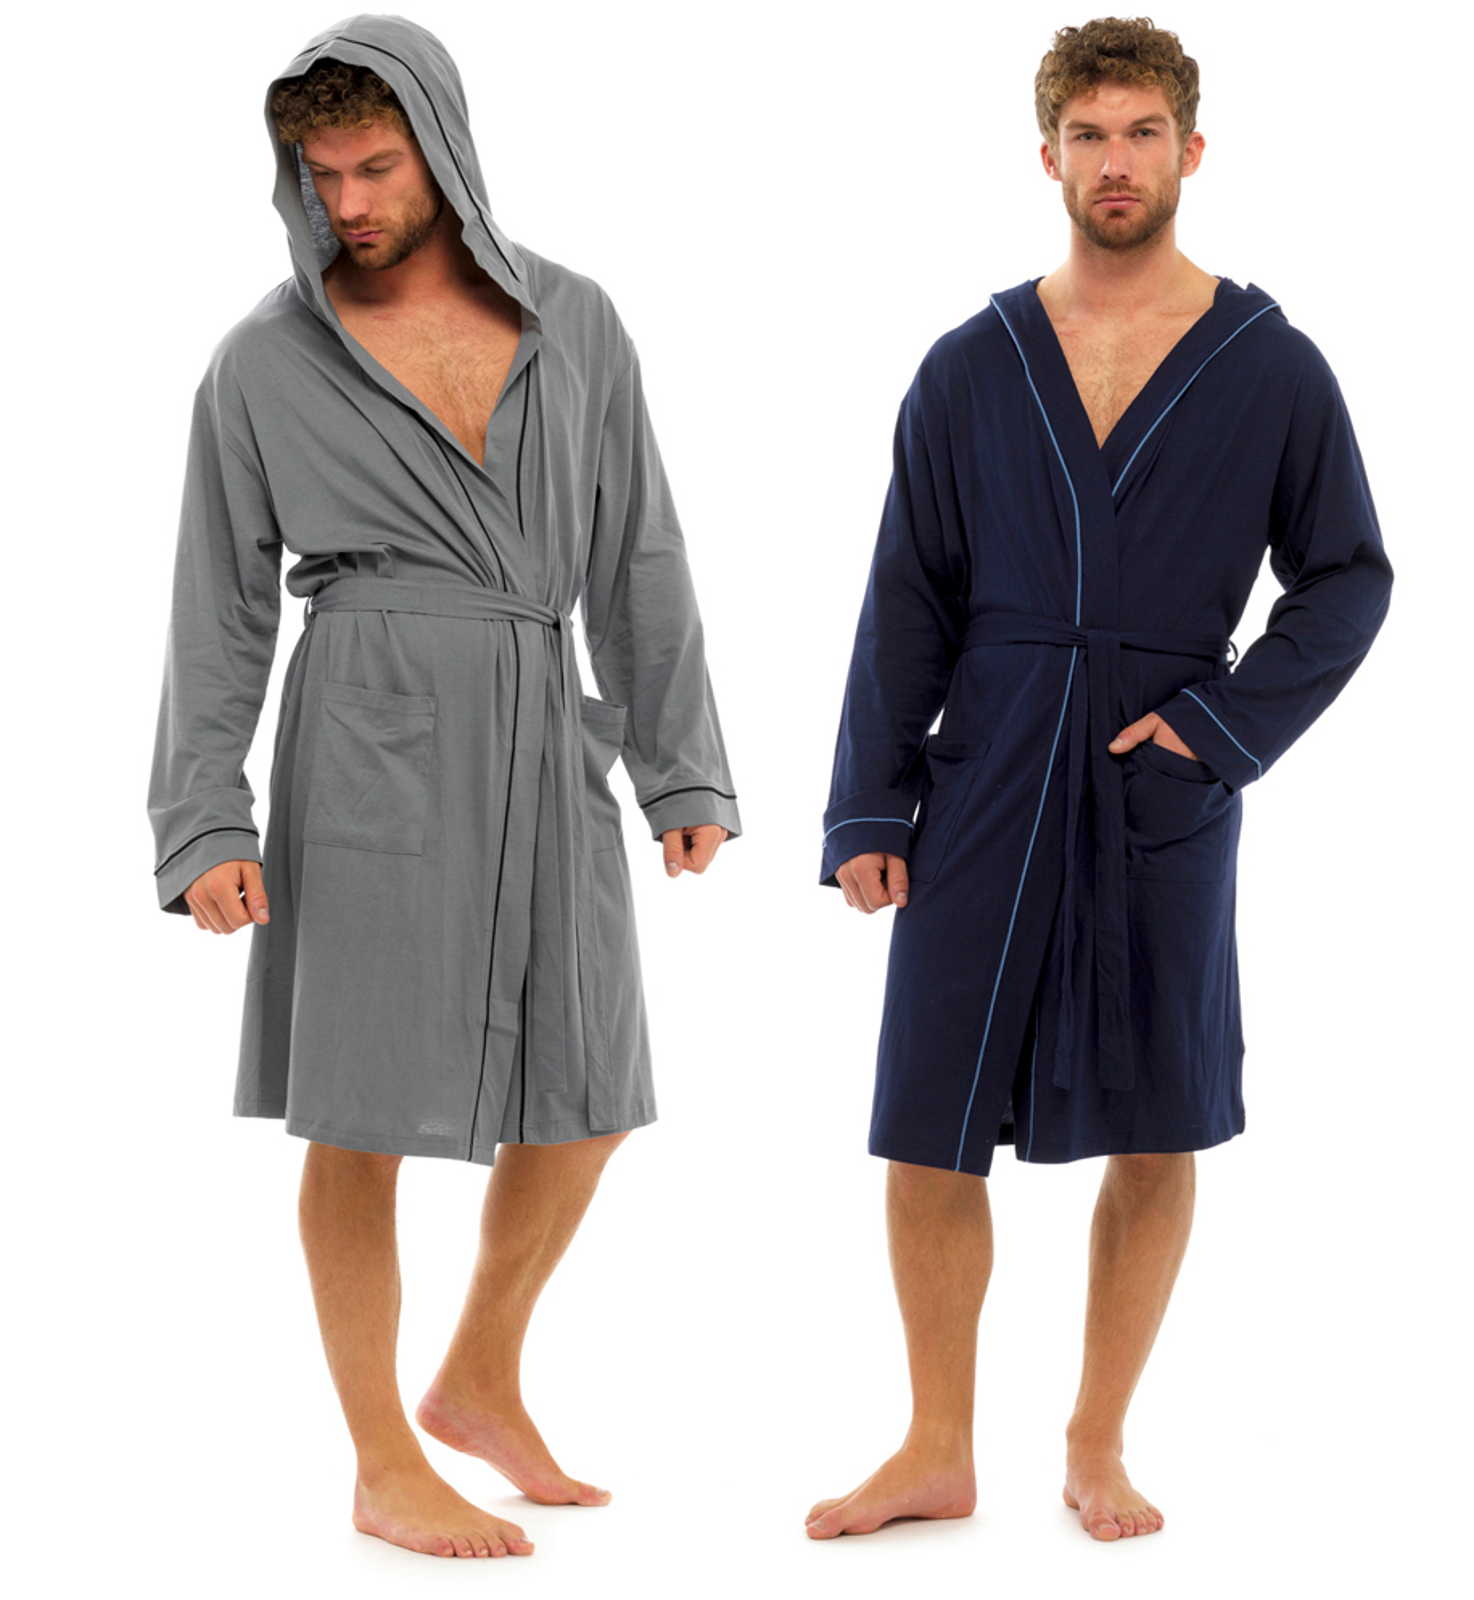 Buy F&F Dressing Gown from our Women's Sale range at Tesco direct. We stock a great range of products at everyday prices. Clubcard points on every order.